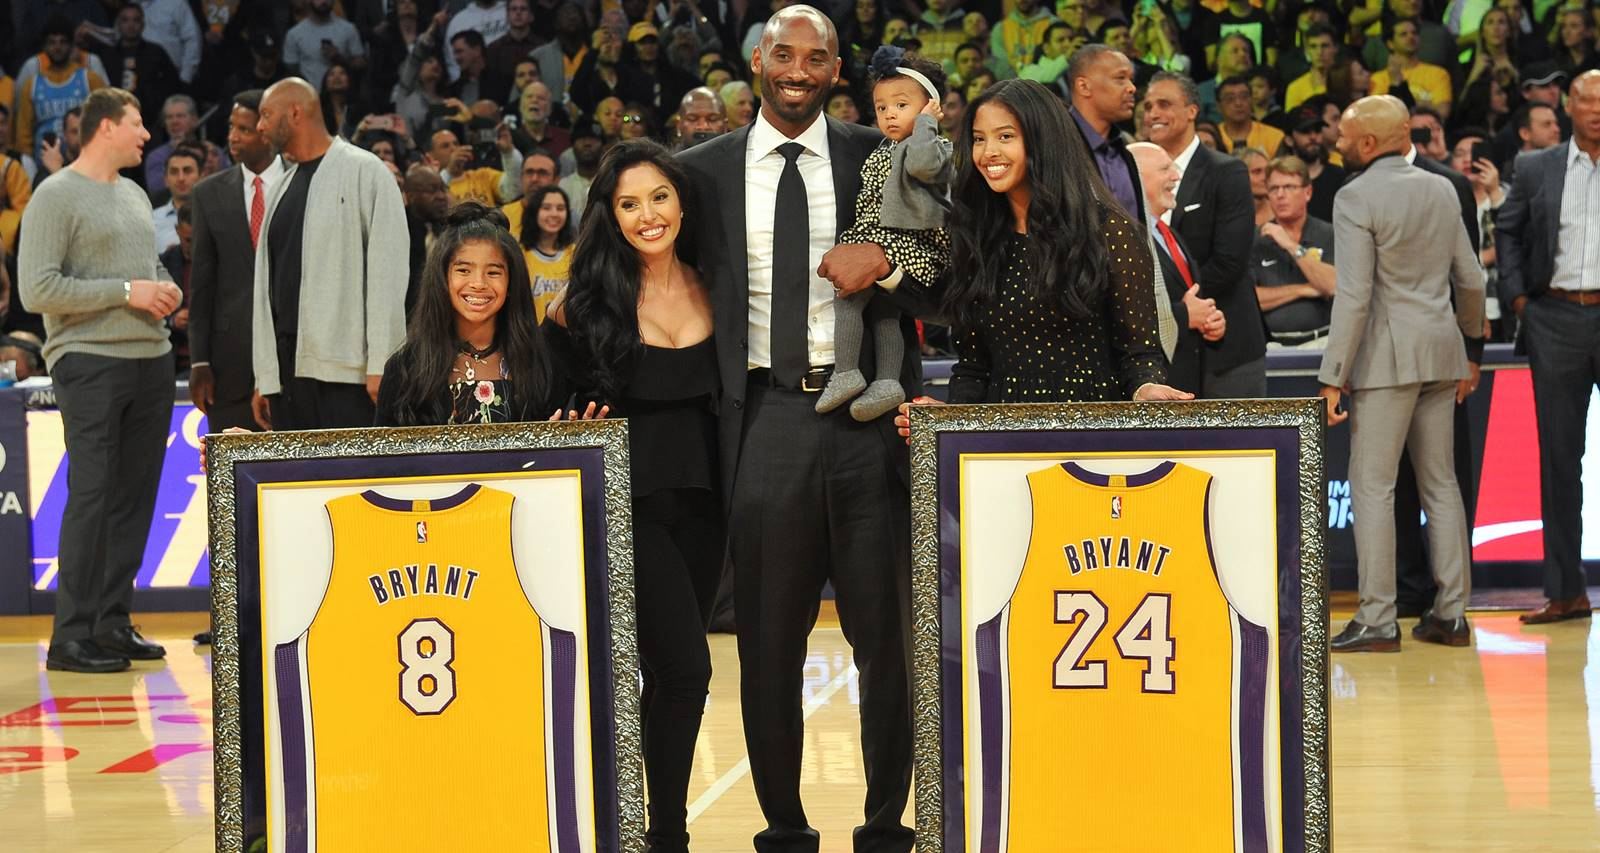 Kobe Bryant Kids, Kobe Bryant Son, Kobe Bryant Daughters